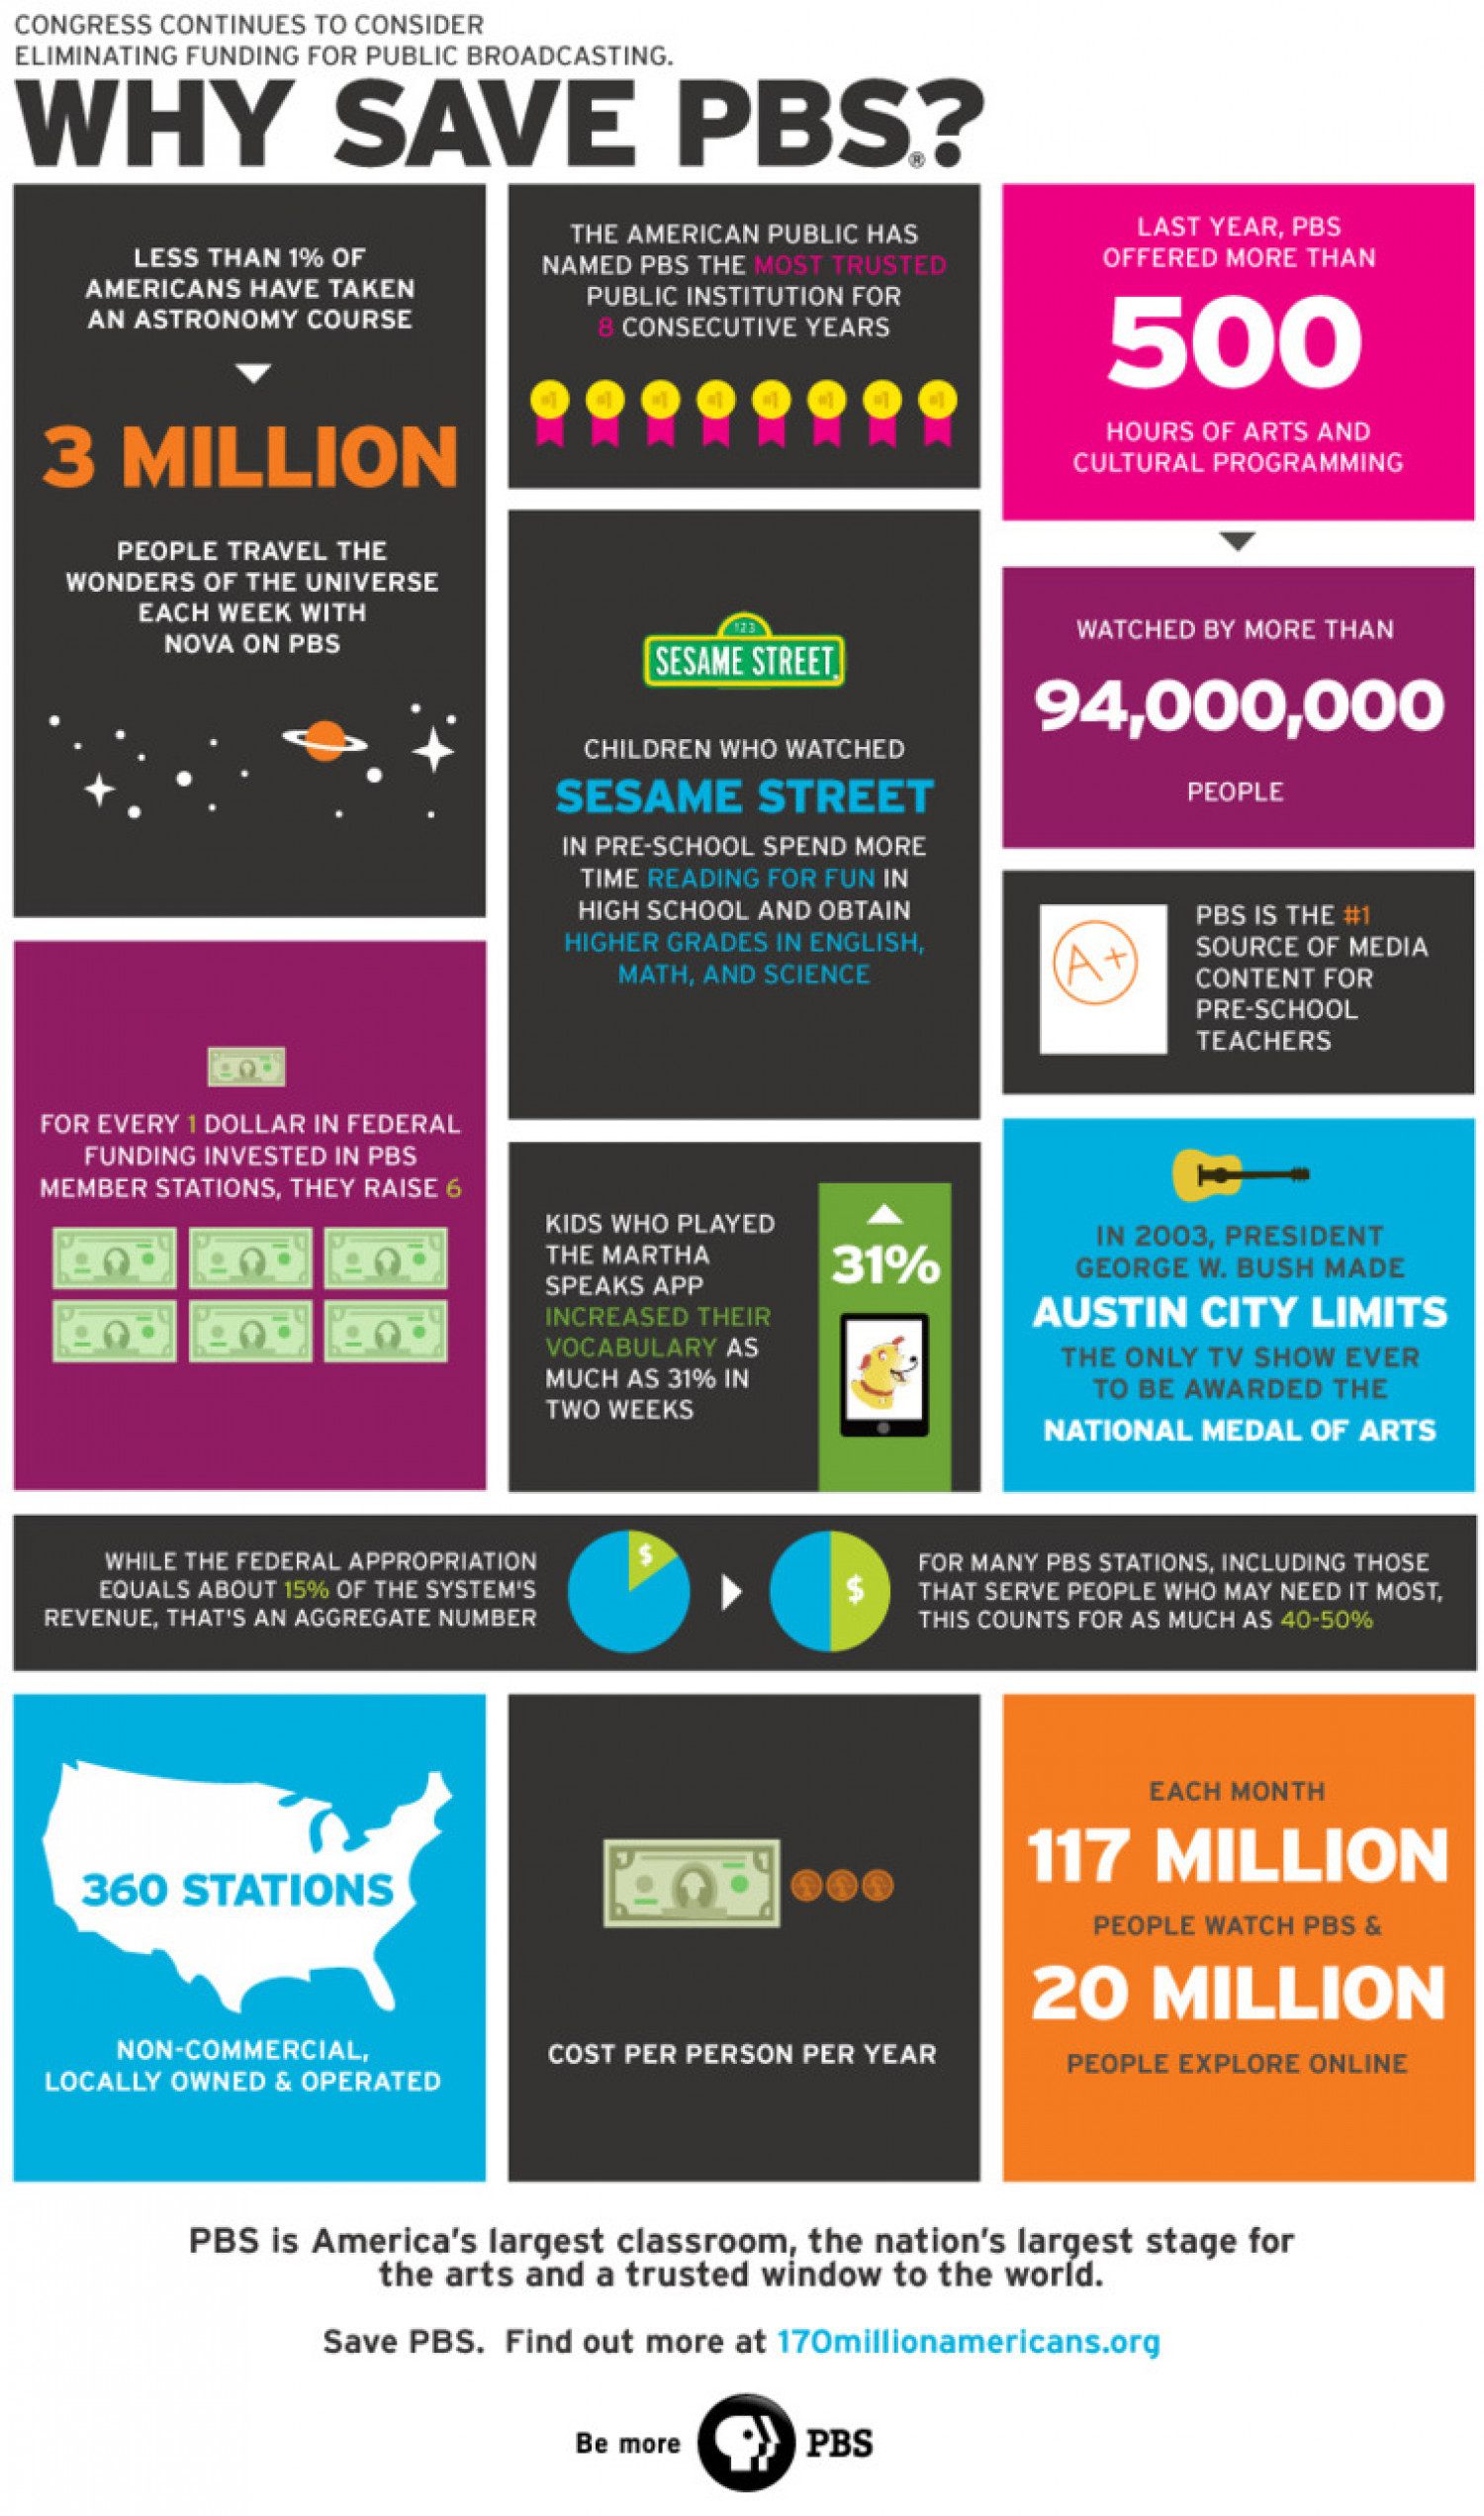 Why Save PBS? Infographic